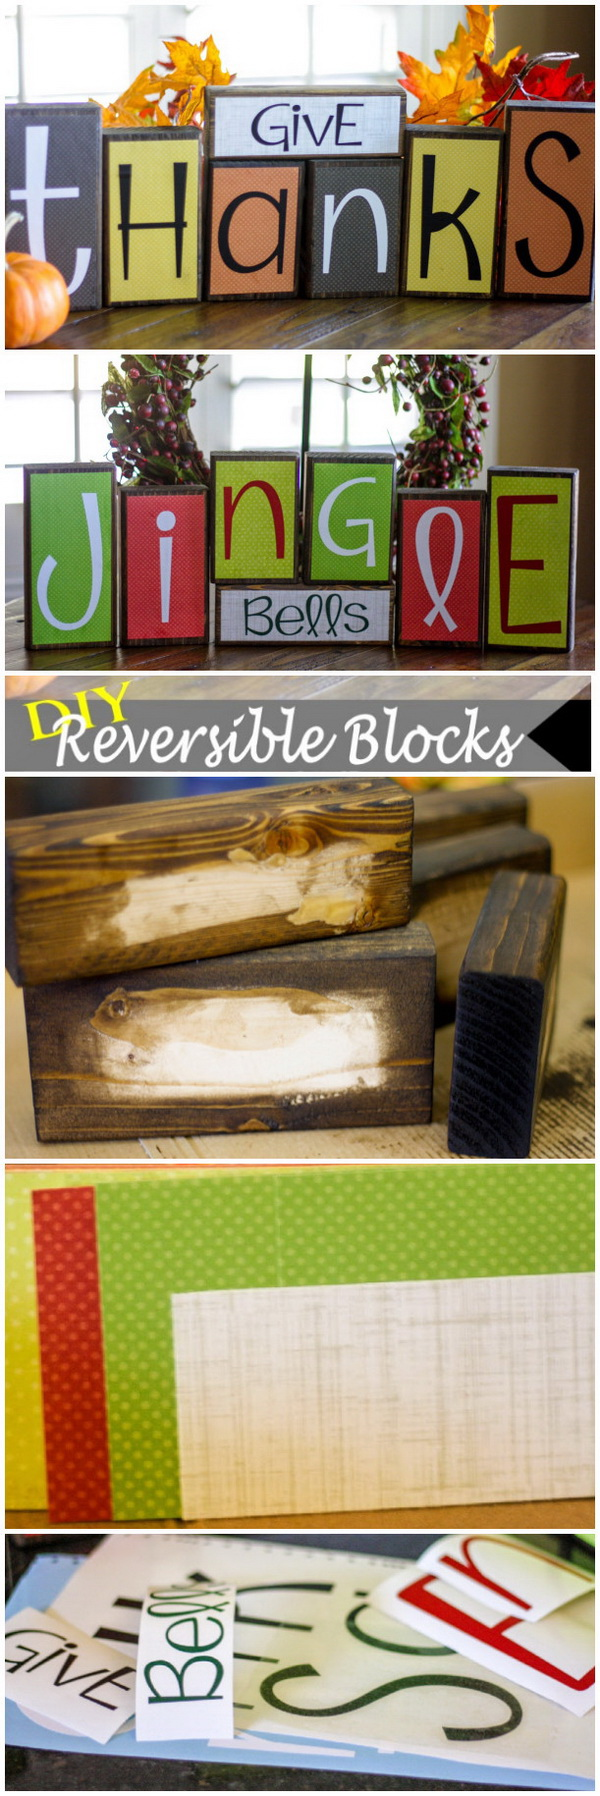 DIY Reversible Wooden Holiday Blocks. Decorating your home for the changing seasons can be fun and easy with these reversible seasonal blocks. These are and easy and beautiful craft. AND they do double duty for Thanksgiving and Christmas or change with vinyl lettering for other holiday!